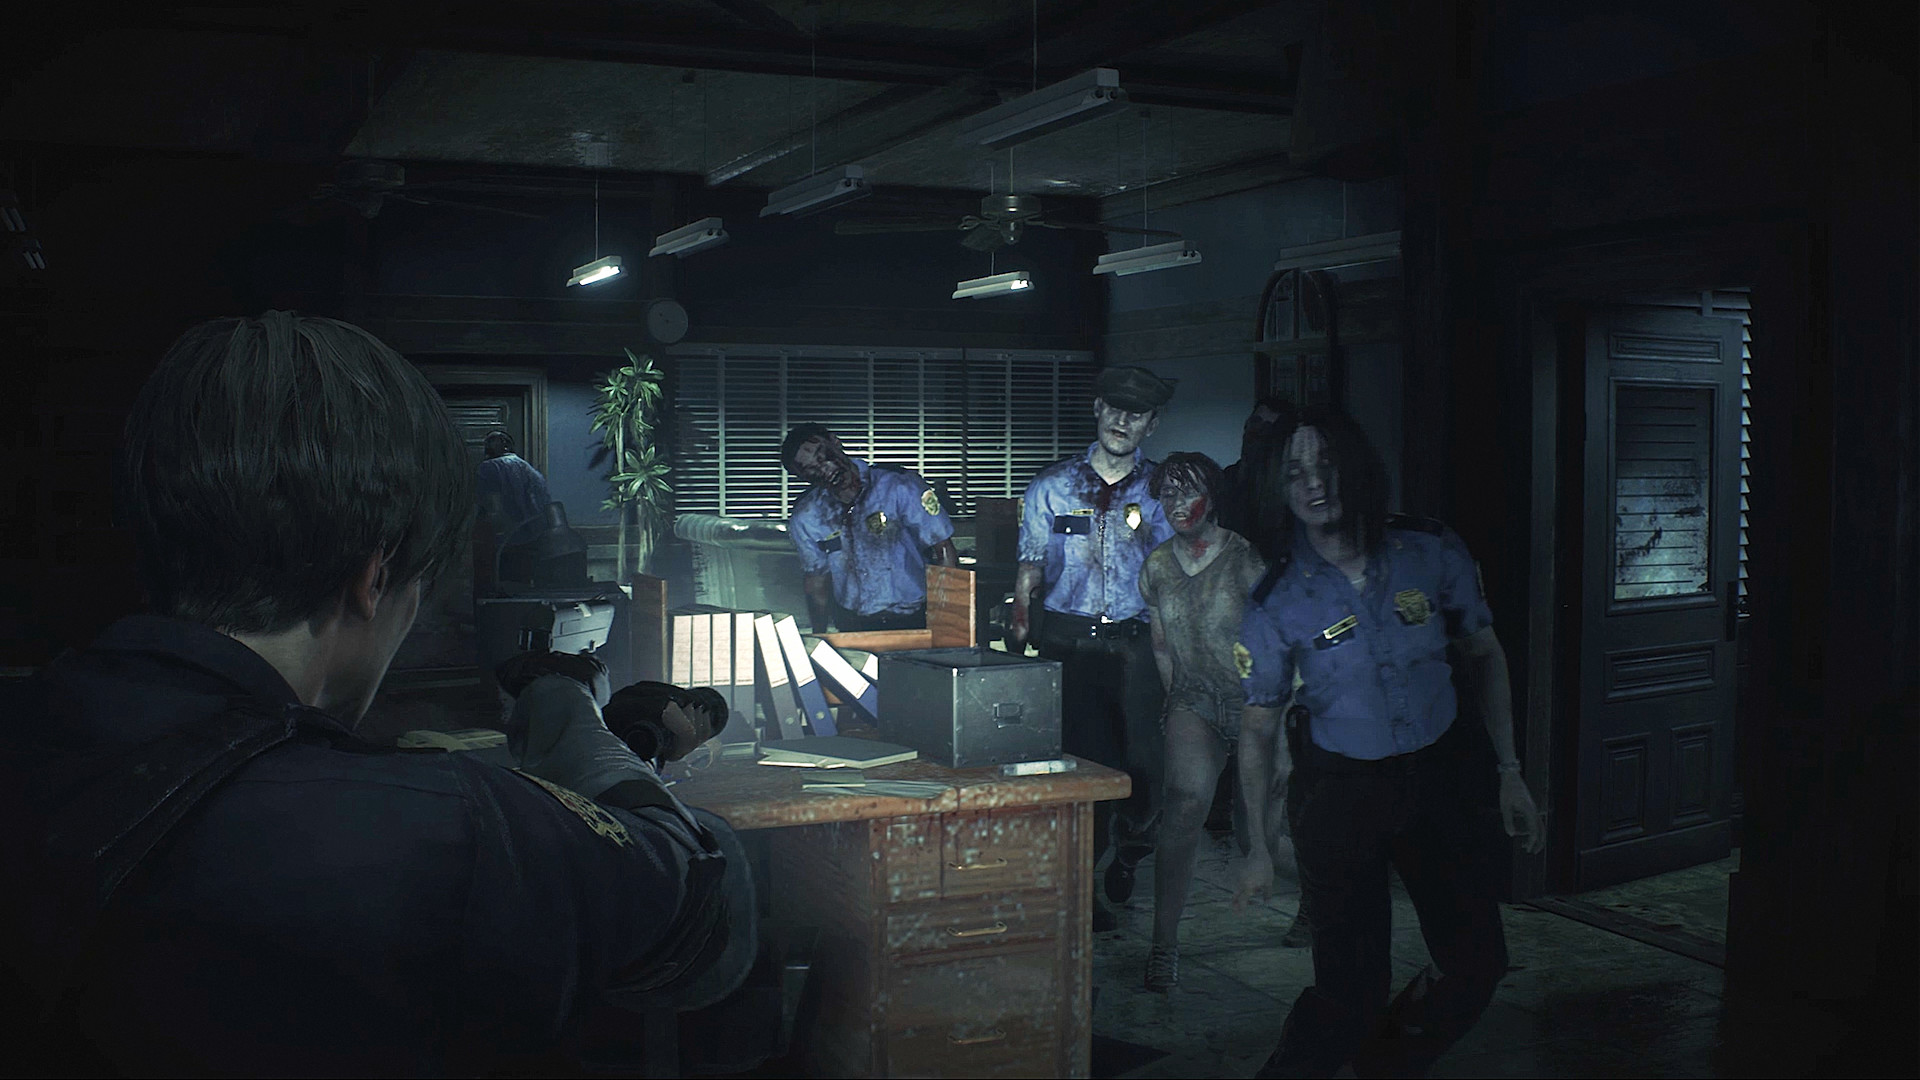 what the dark room sink is used for in Resident Evil 2